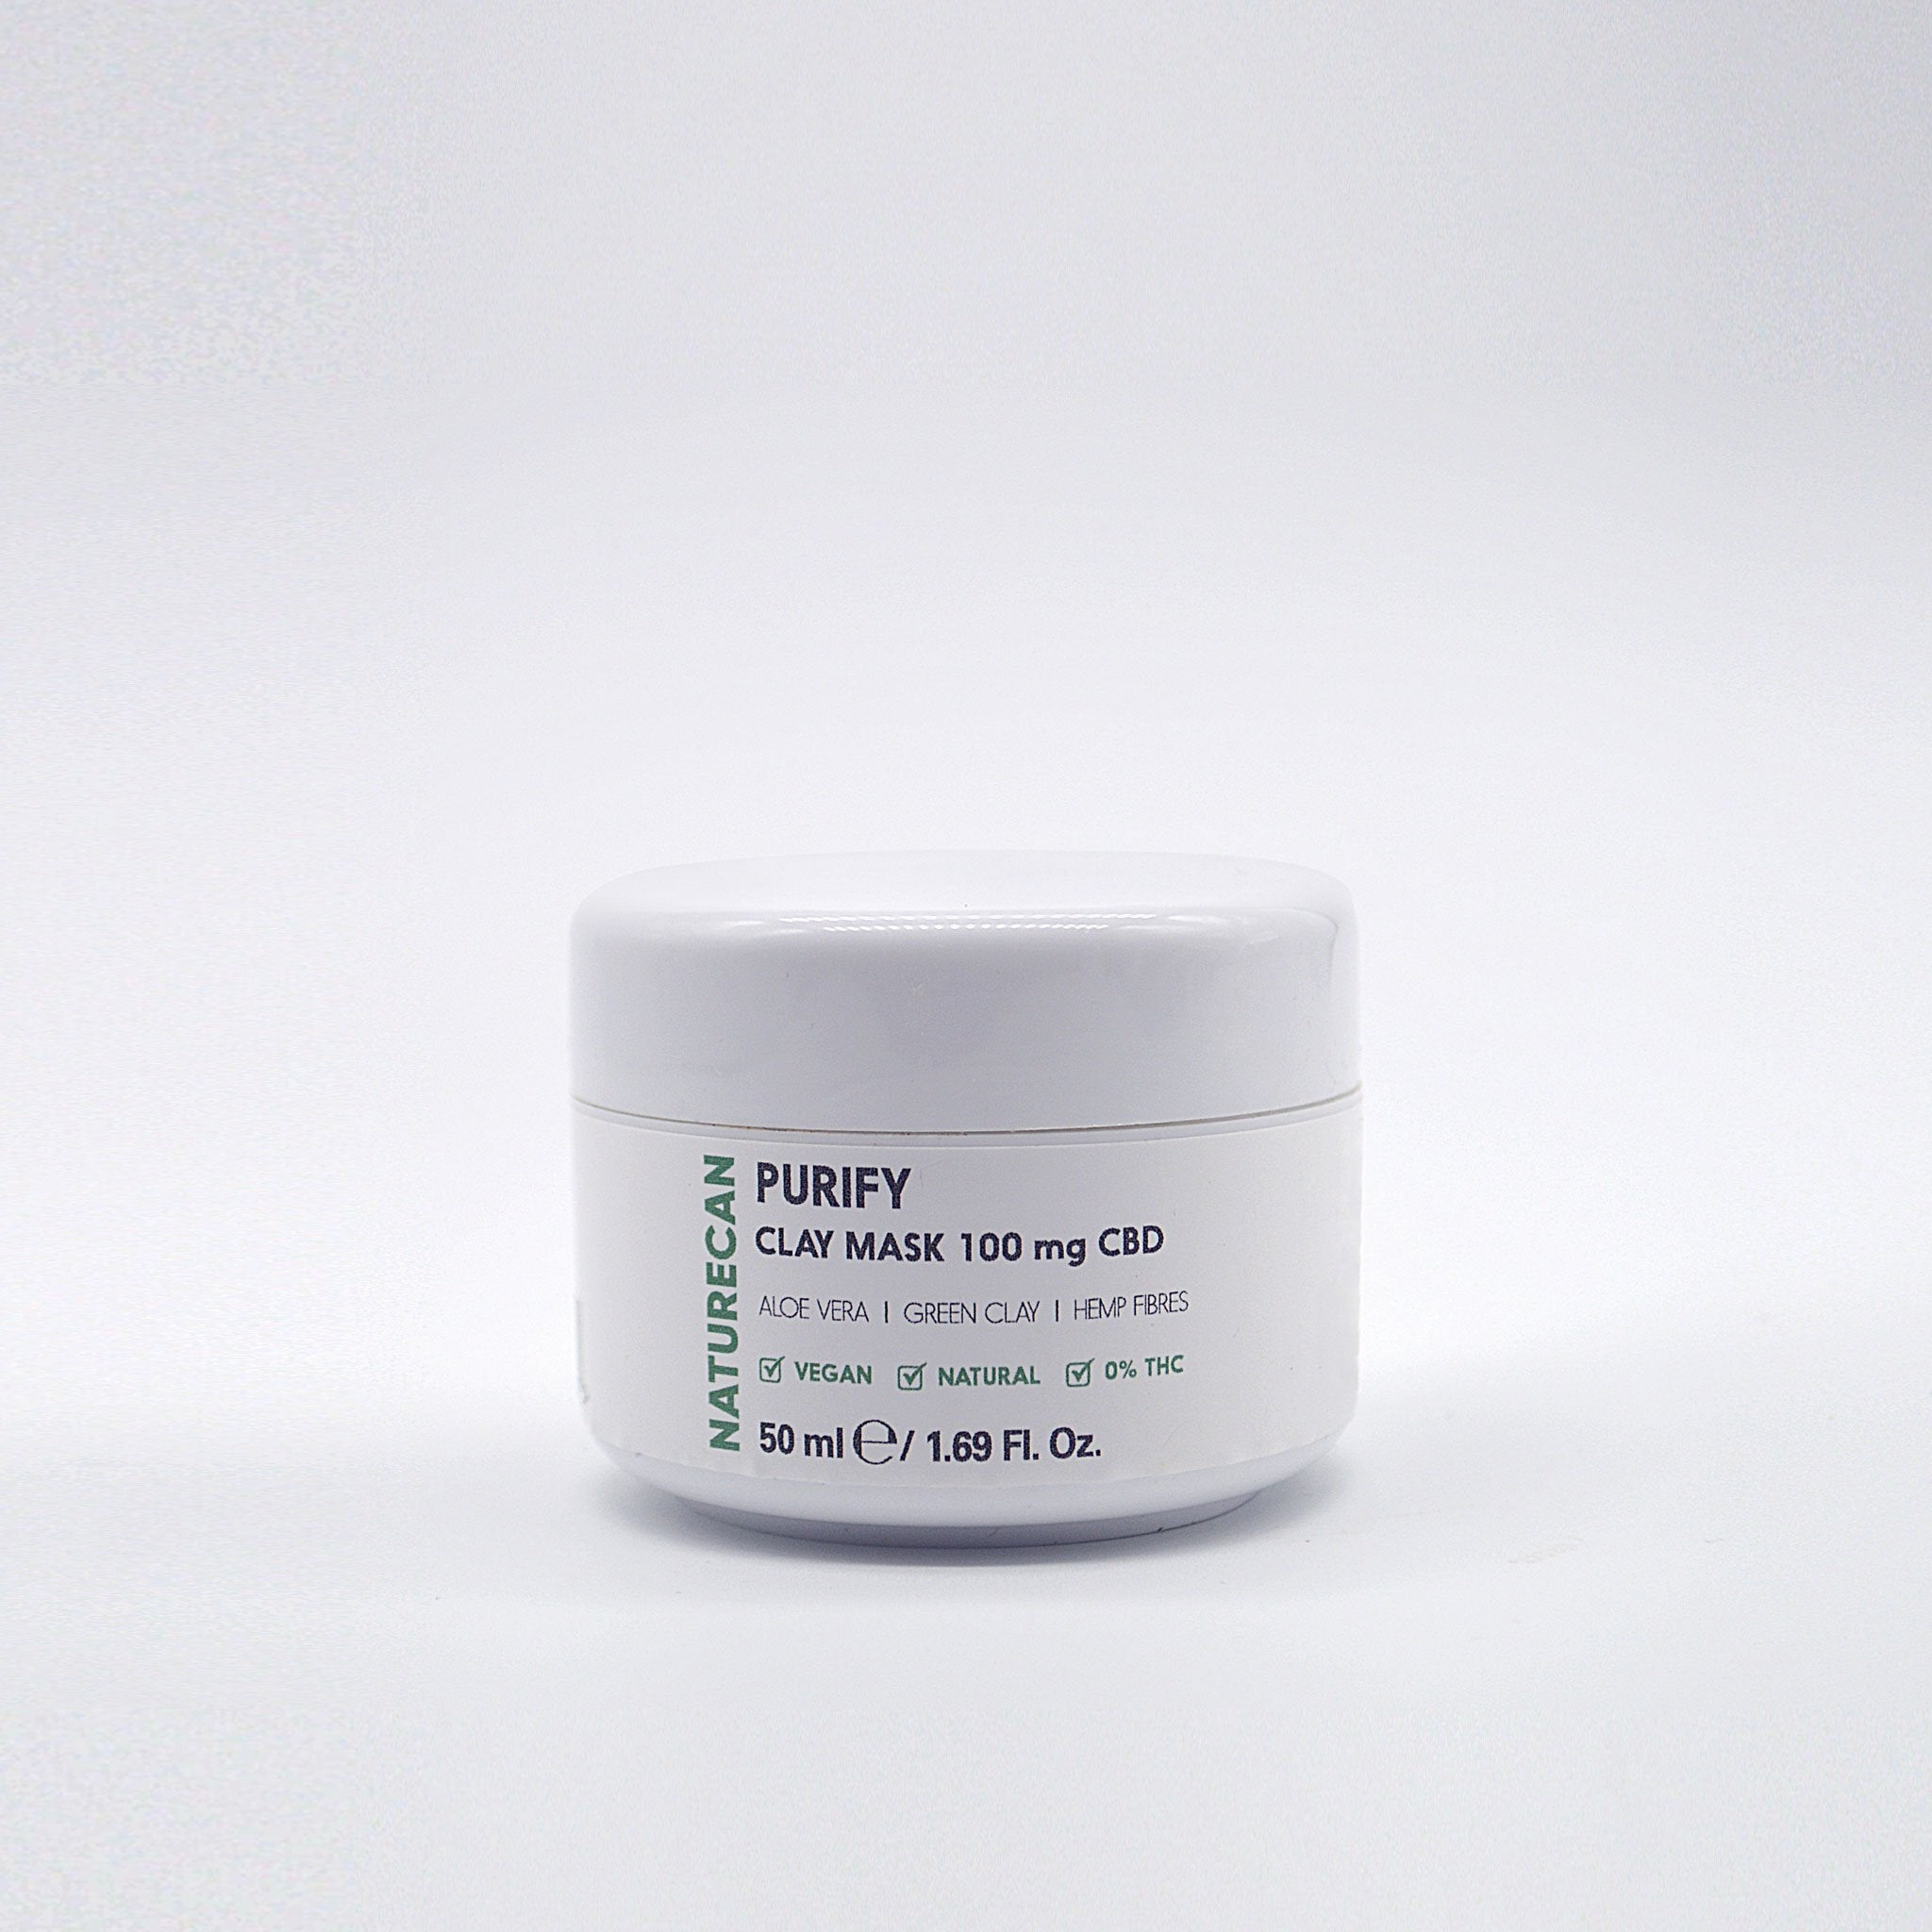 Masque d'argile au CBD Purify